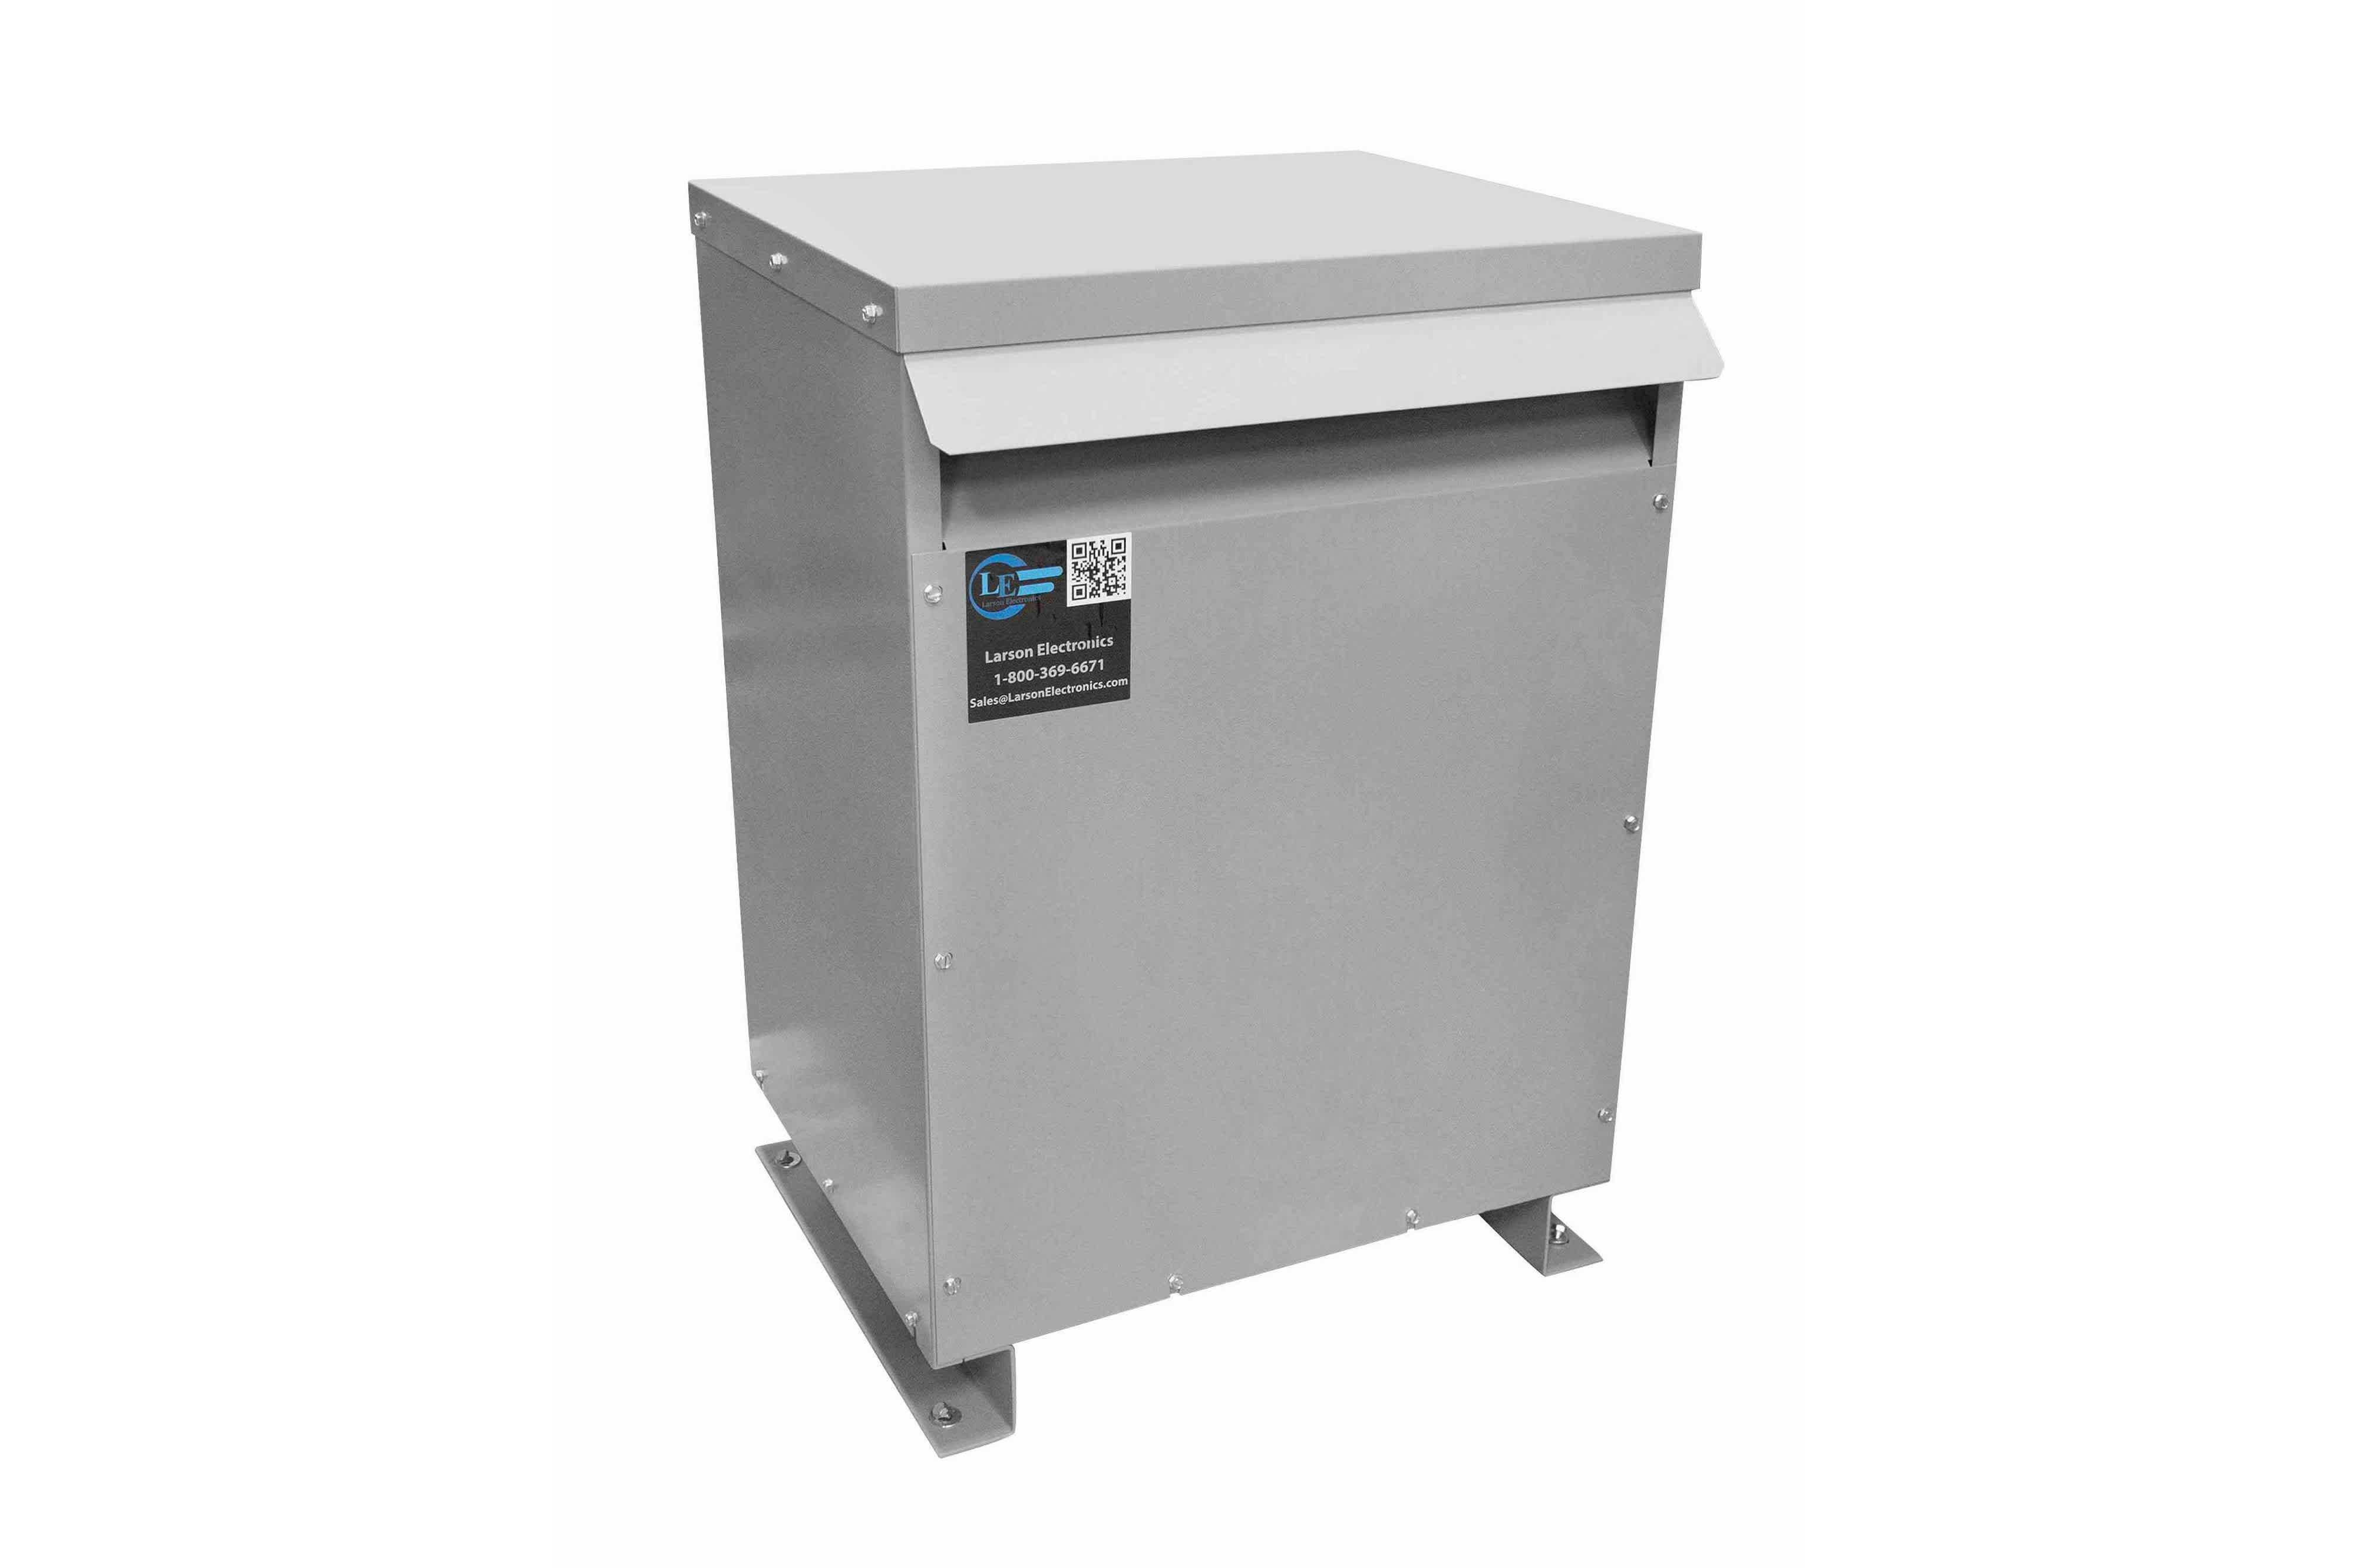 75 kVA 3PH Isolation Transformer, 380V Wye Primary, 240V/120 Delta Secondary, N3R, Ventilated, 60 Hz